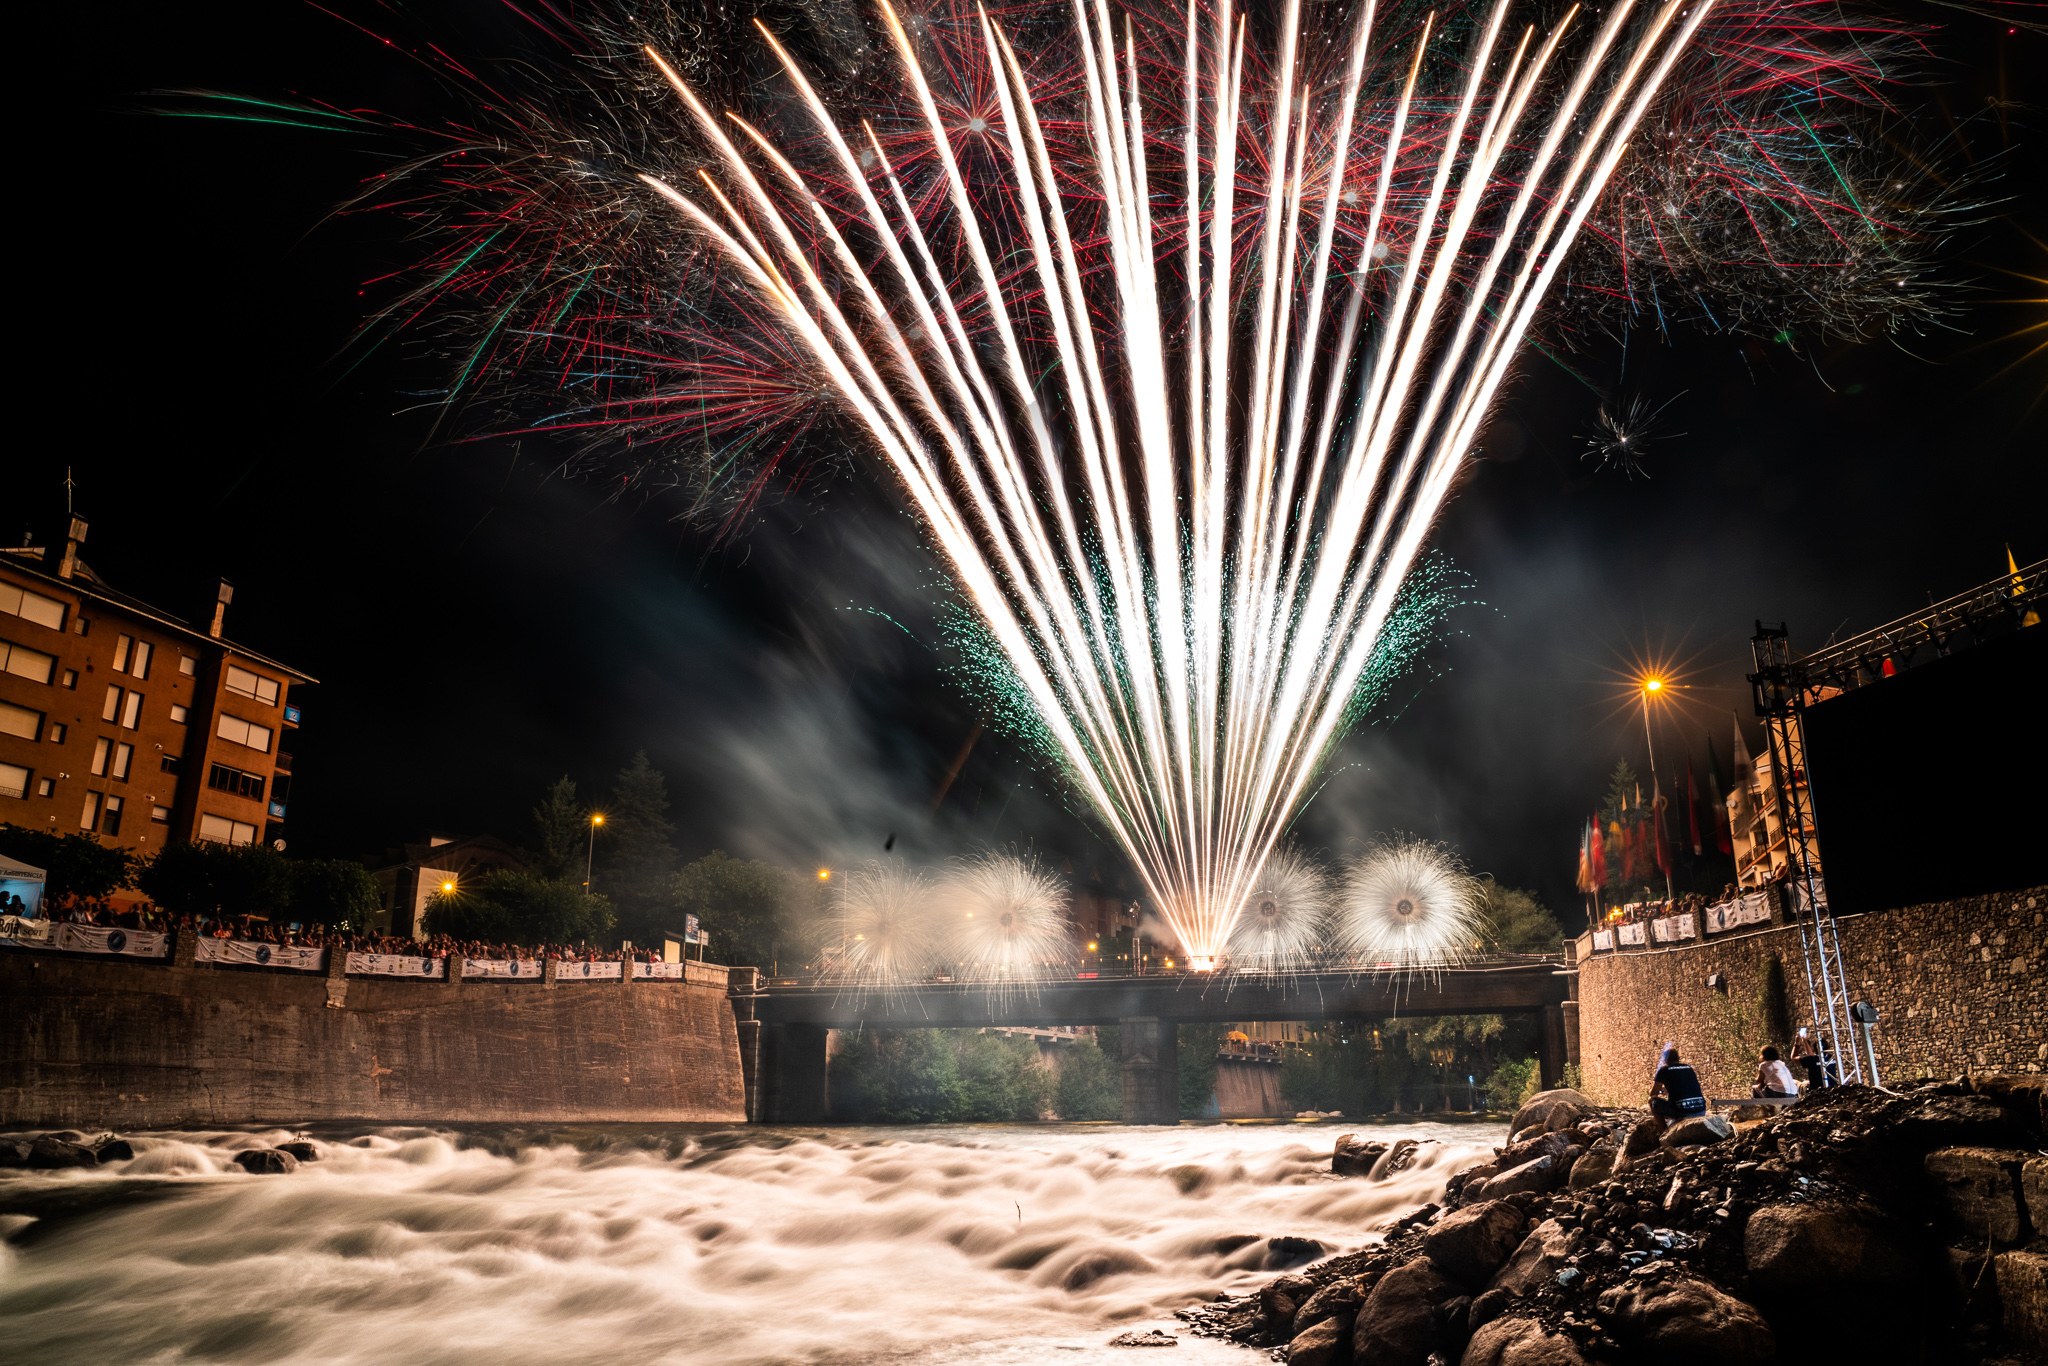 Fireworks ICF Freestyle Worlds 2019 ©Peter Holcombe/ kayaksession.com